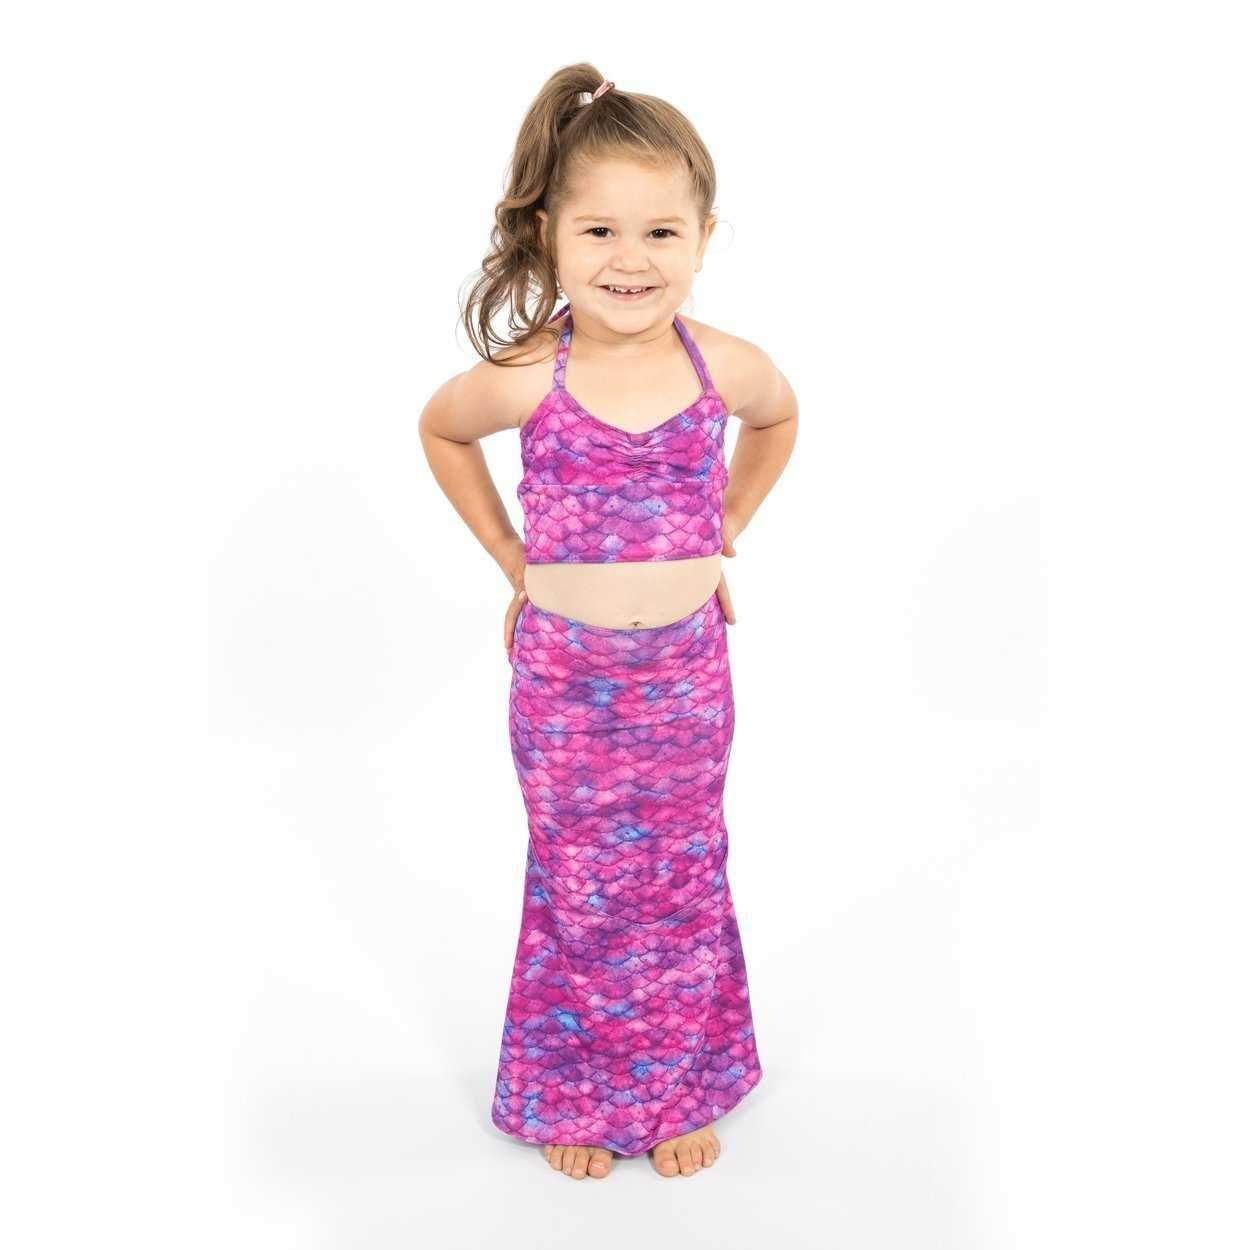 Toddler Swimming Skirt and Tankini - Mermaids Tail UK